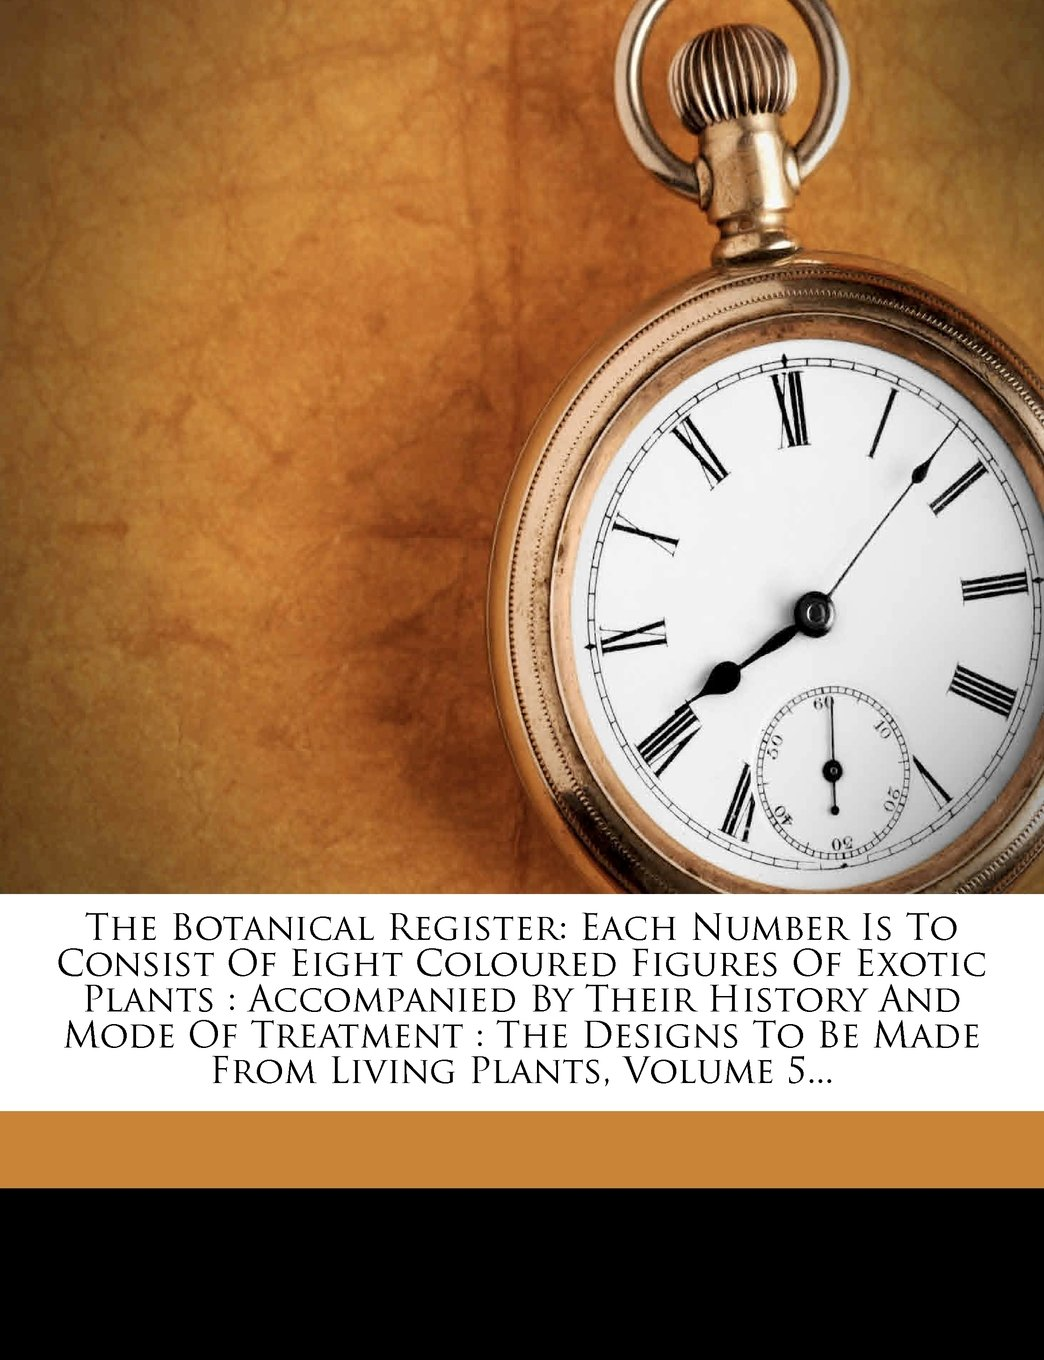 Download The Botanical Register: Each Number Is To Consist Of Eight Coloured Figures Of Exotic Plants : Accompanied By Their History And Mode Of Treatment : ... To Be Made From Living Plants, Volume 5... pdf